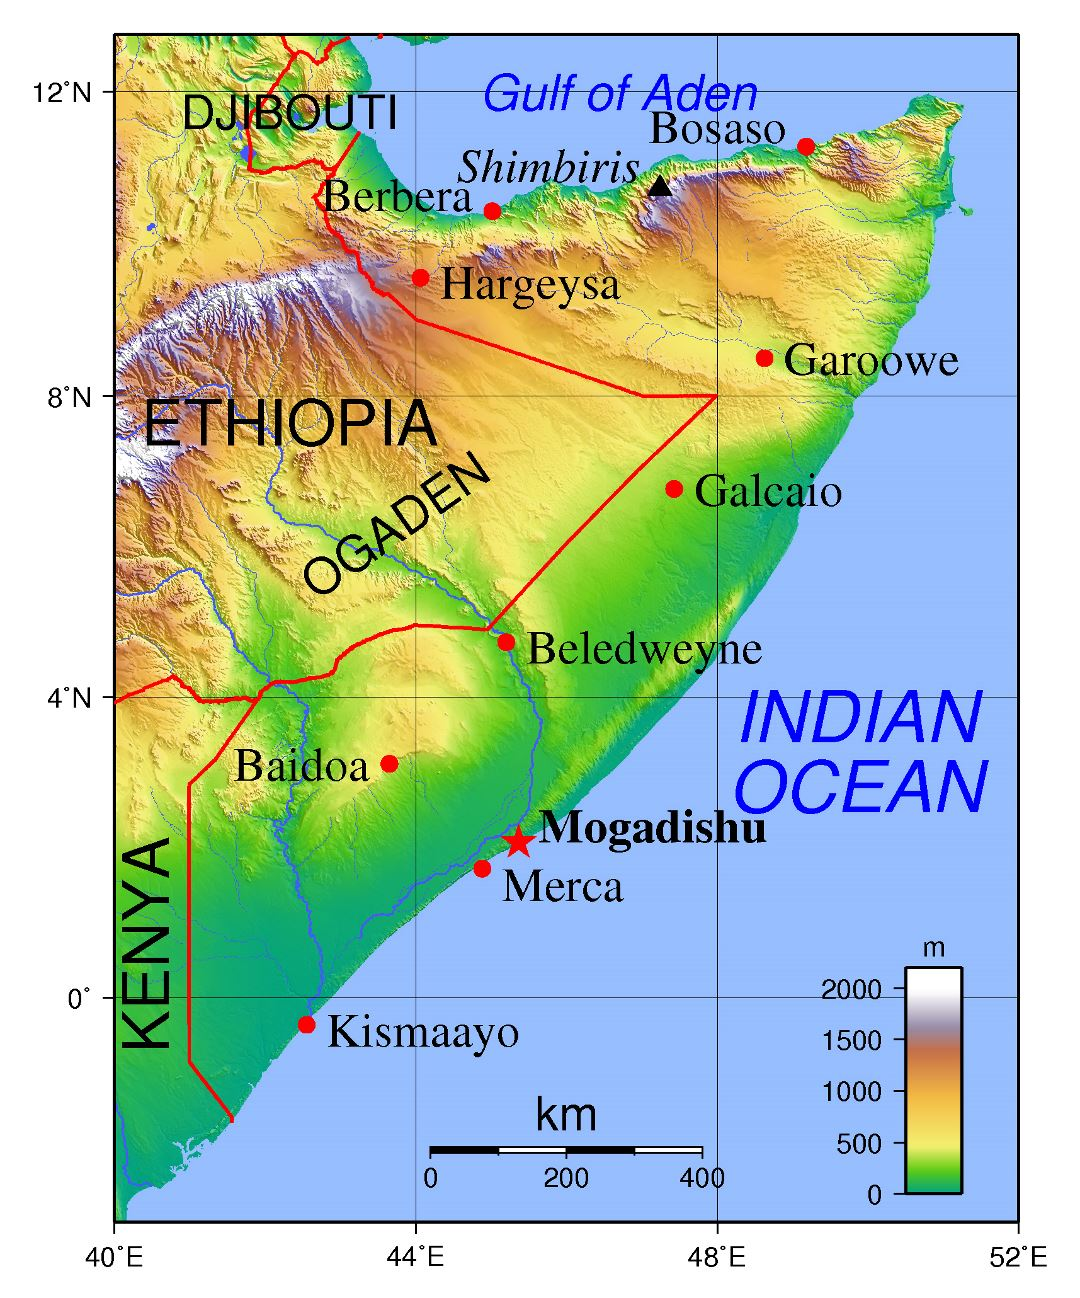 Large topographical map of Somalia with major cities